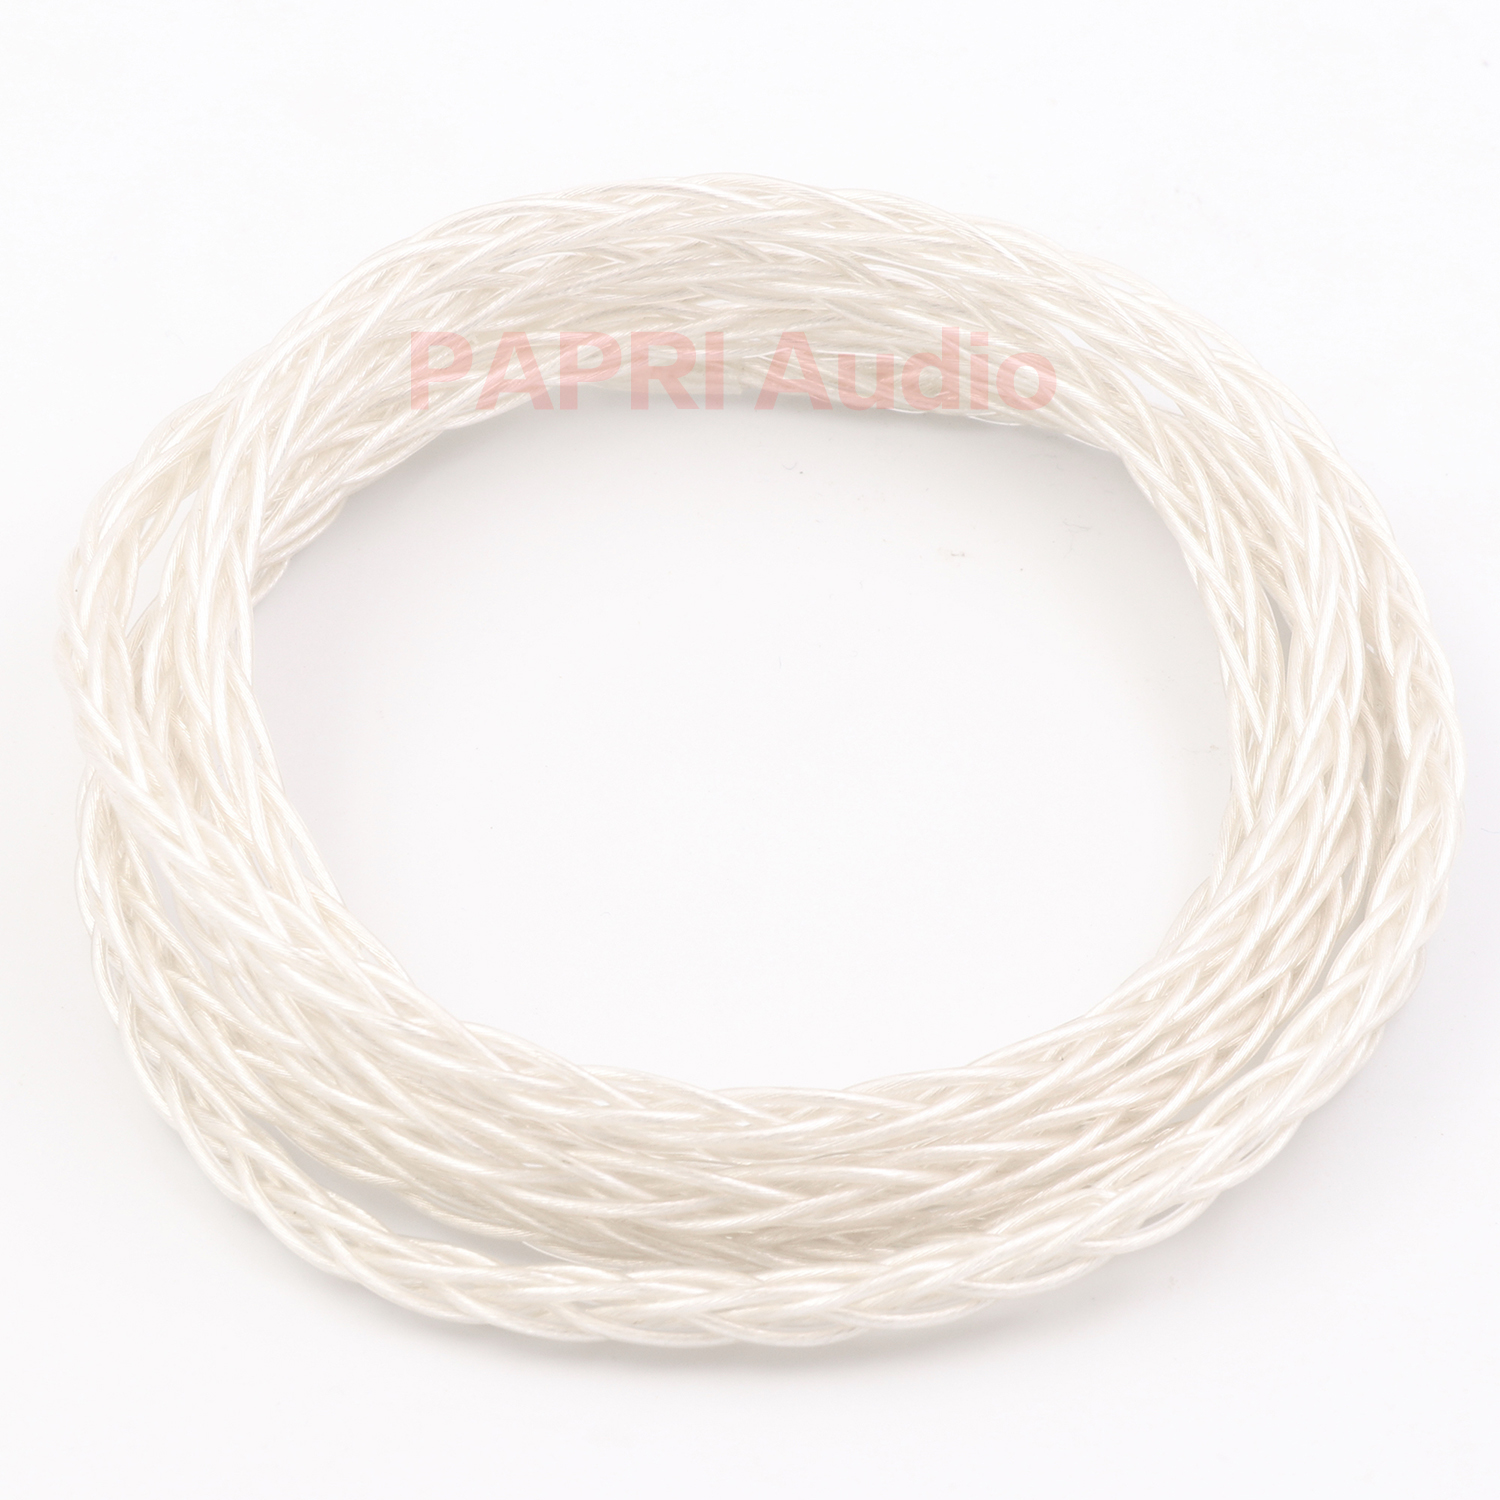 PAPRI Newest GS02 8Cores Upgrade Headphone Cable 6N OCC+Silver Plated Litz Structure Wire Hifi DIY For Earphone Audio Line